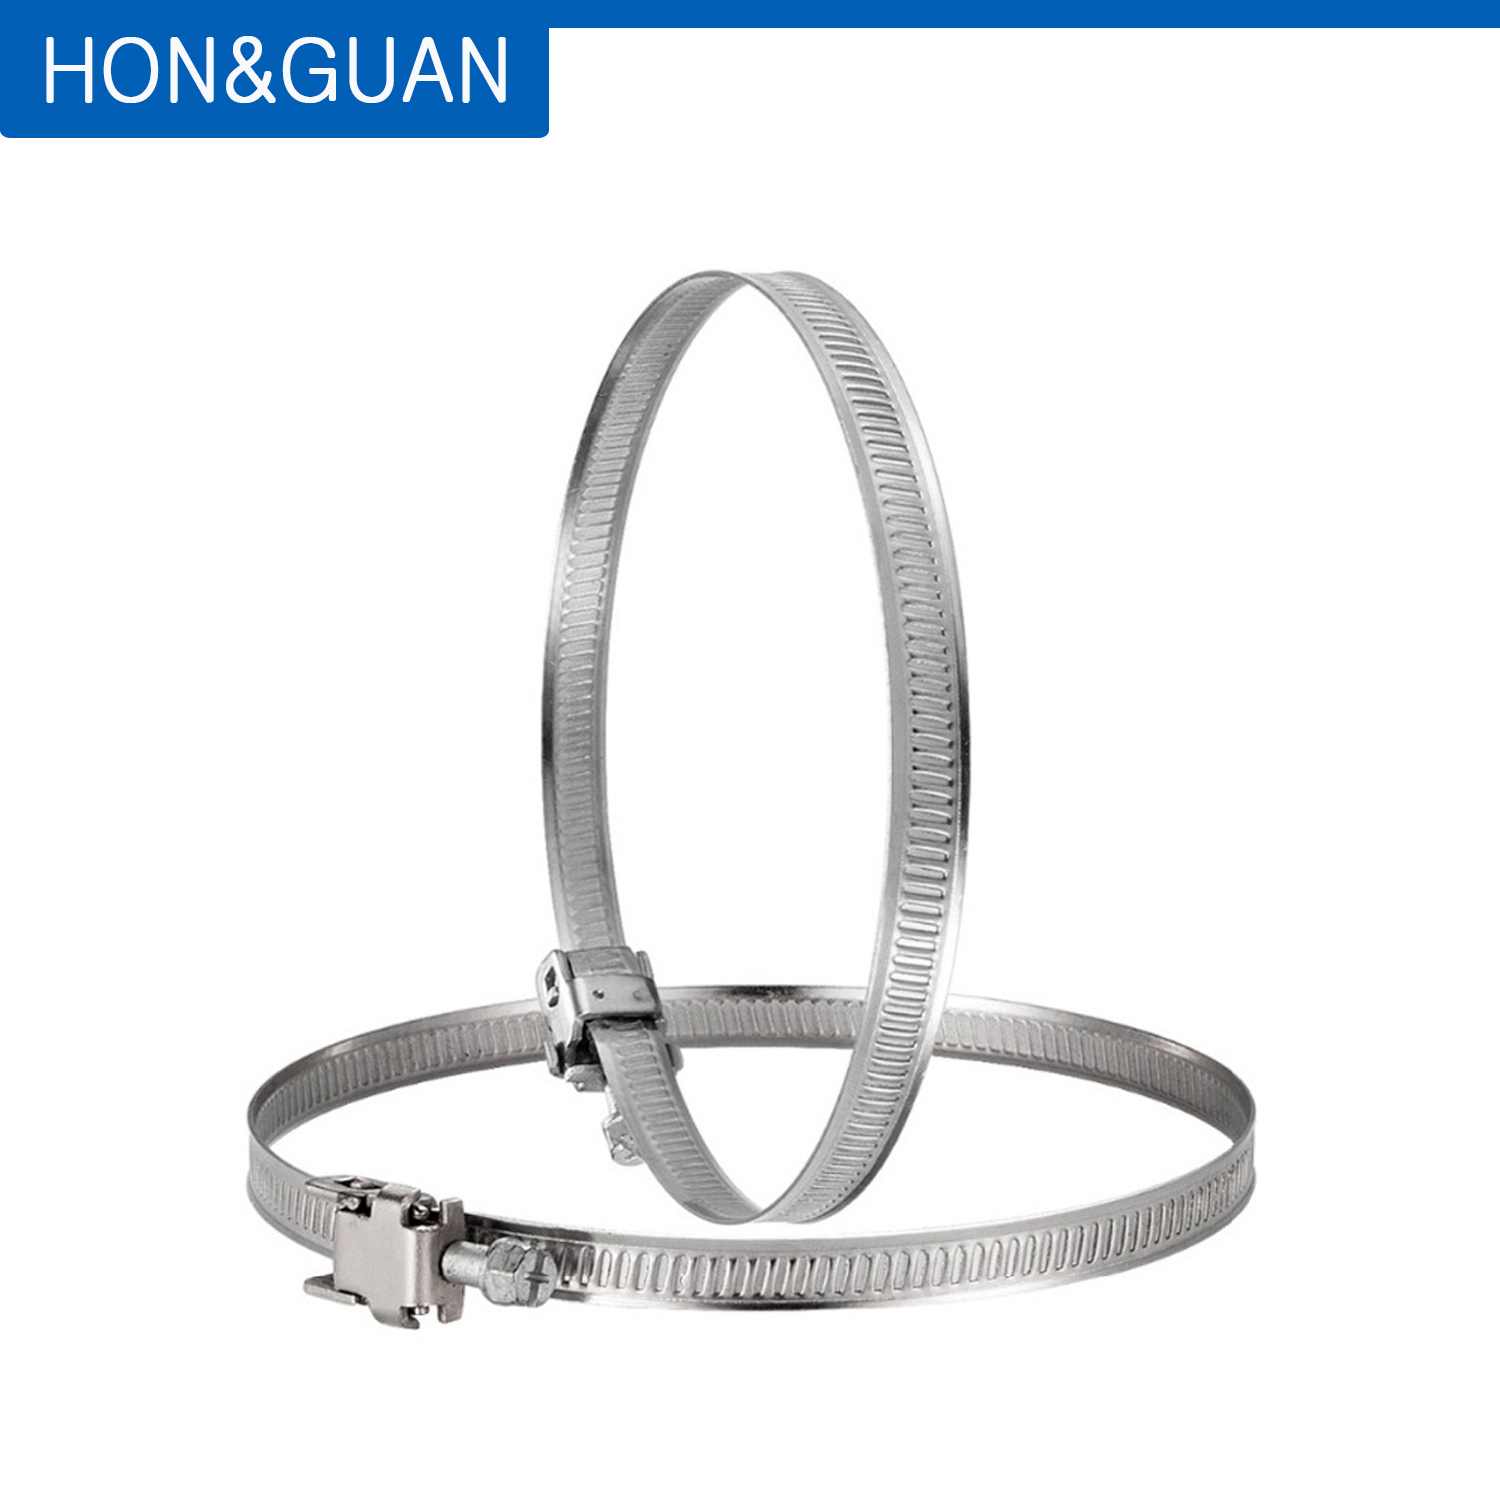 2pcs 6inch 150mm Stainless Steel Hose Clamps Hose Clips Duct Clamp